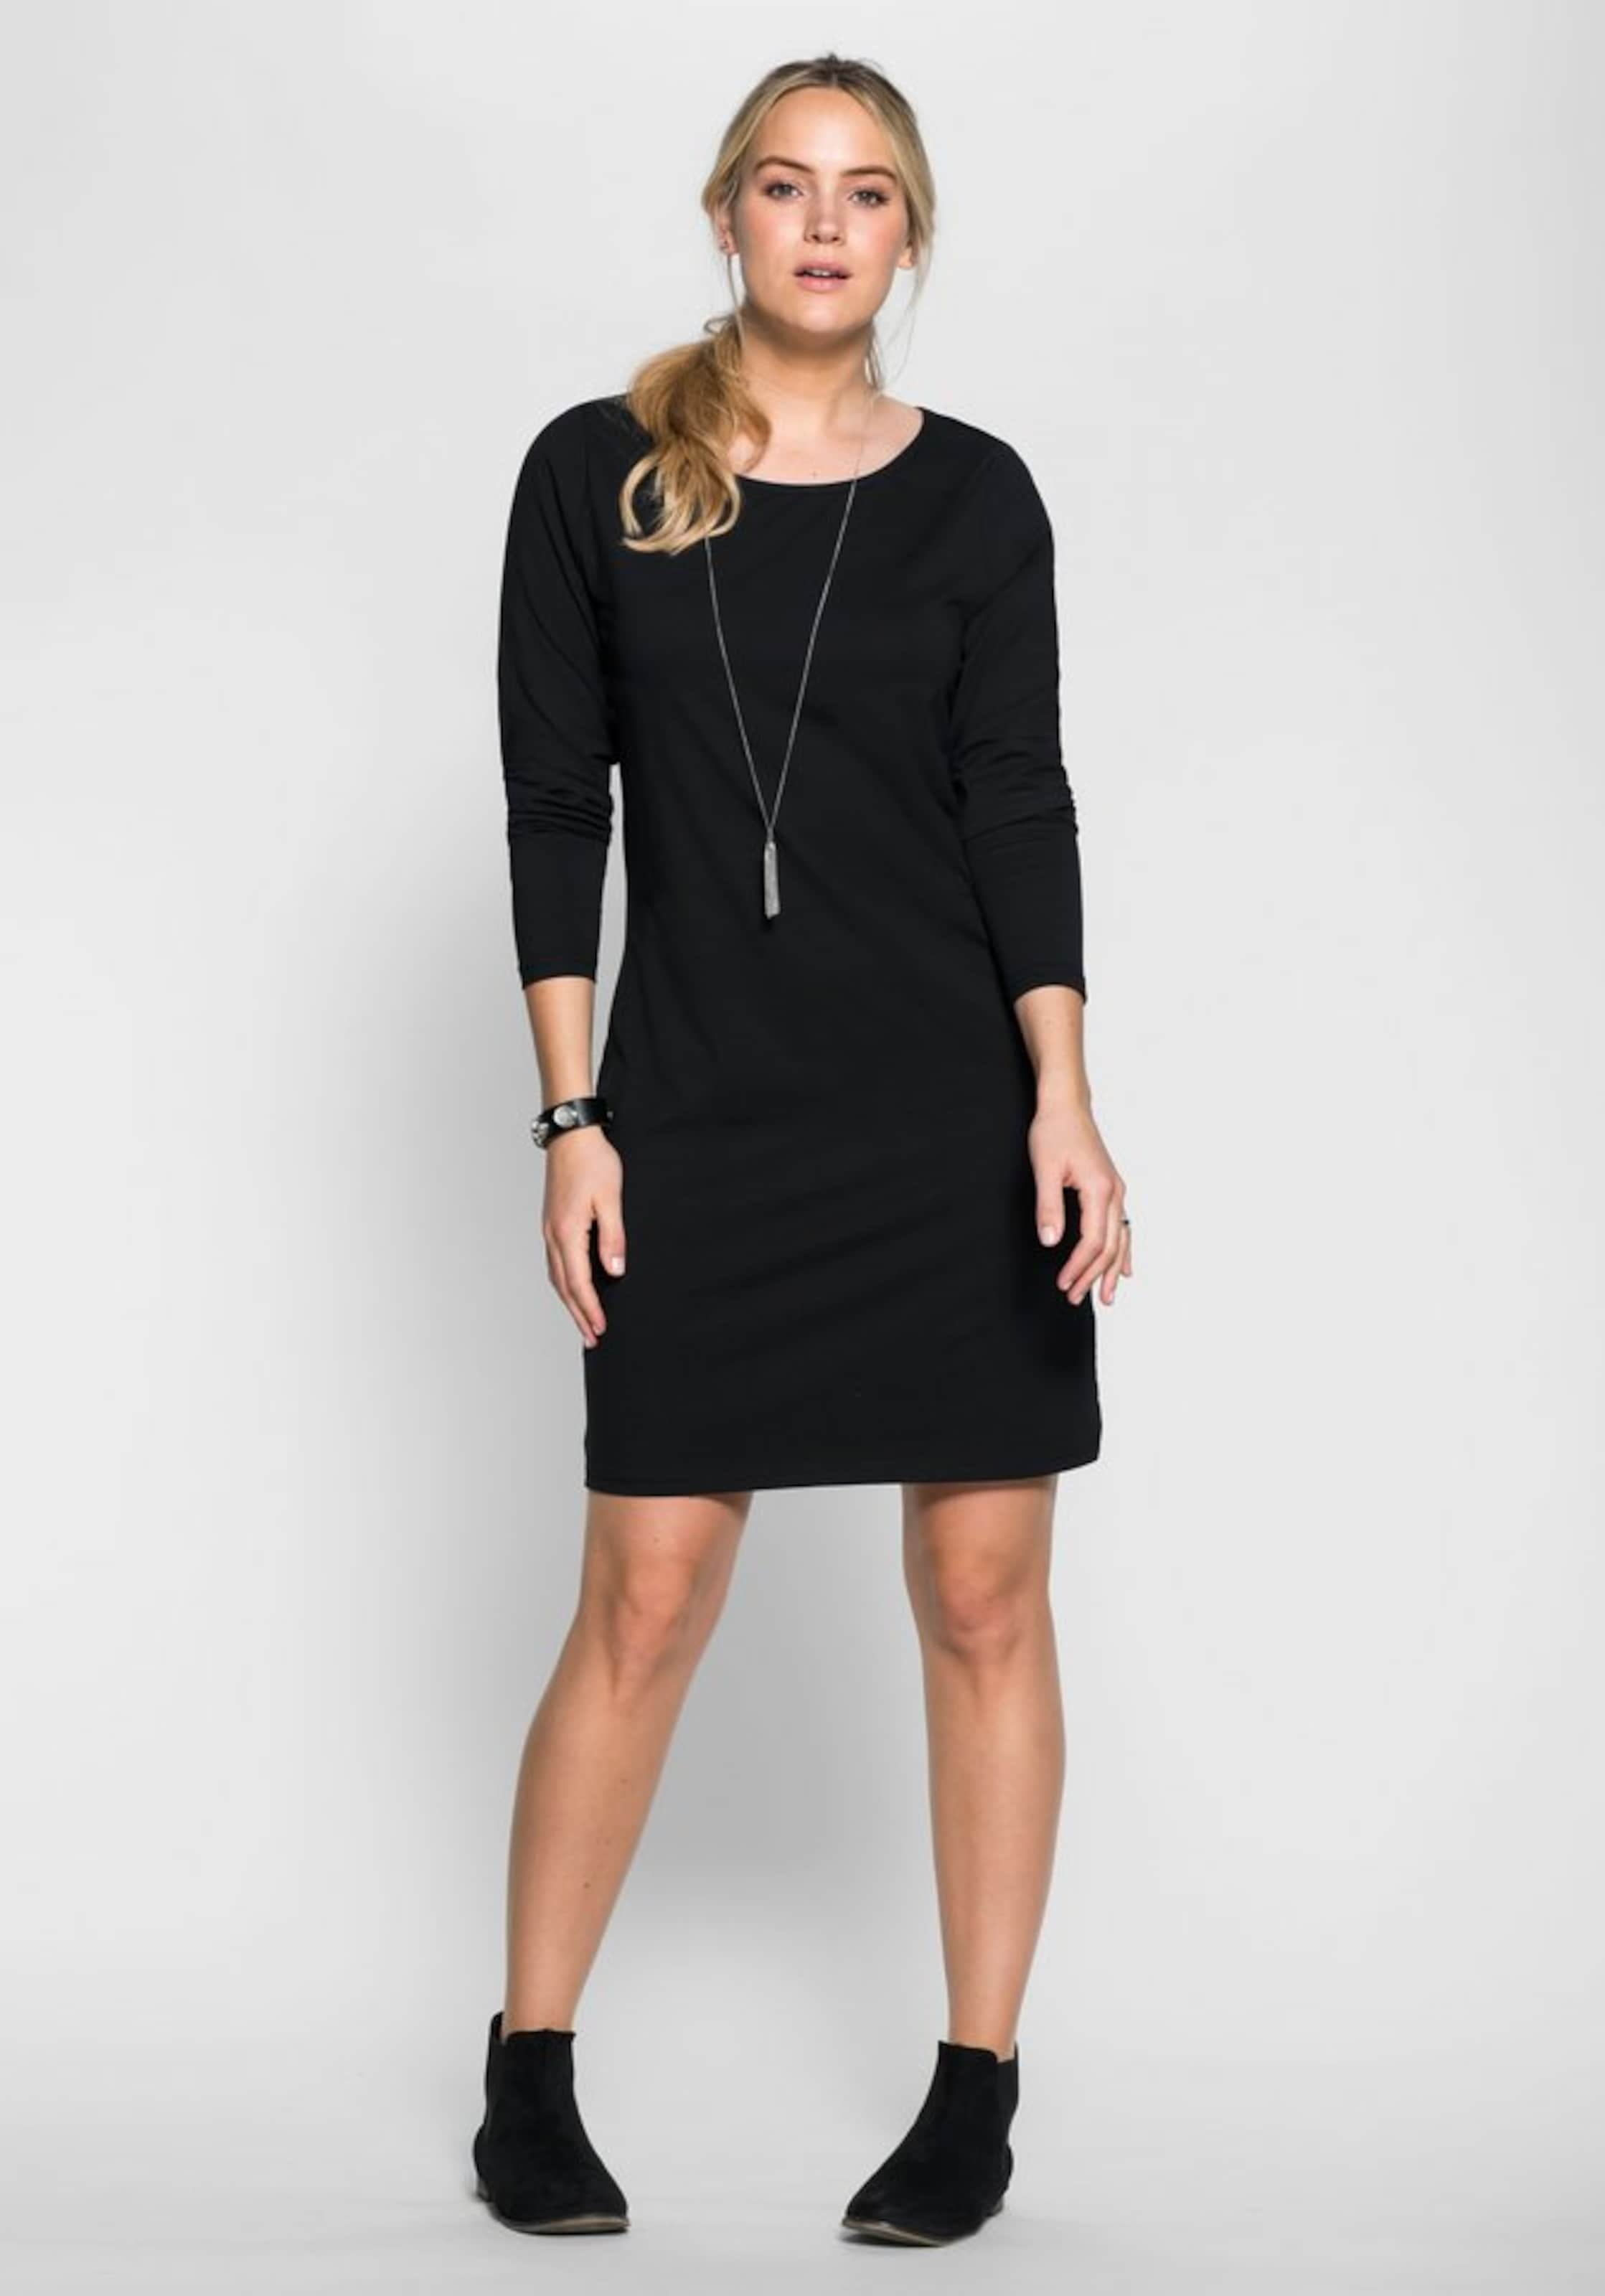 Kleid casual Kleid sheego sheego Basic Basic casual qzxg5nAR